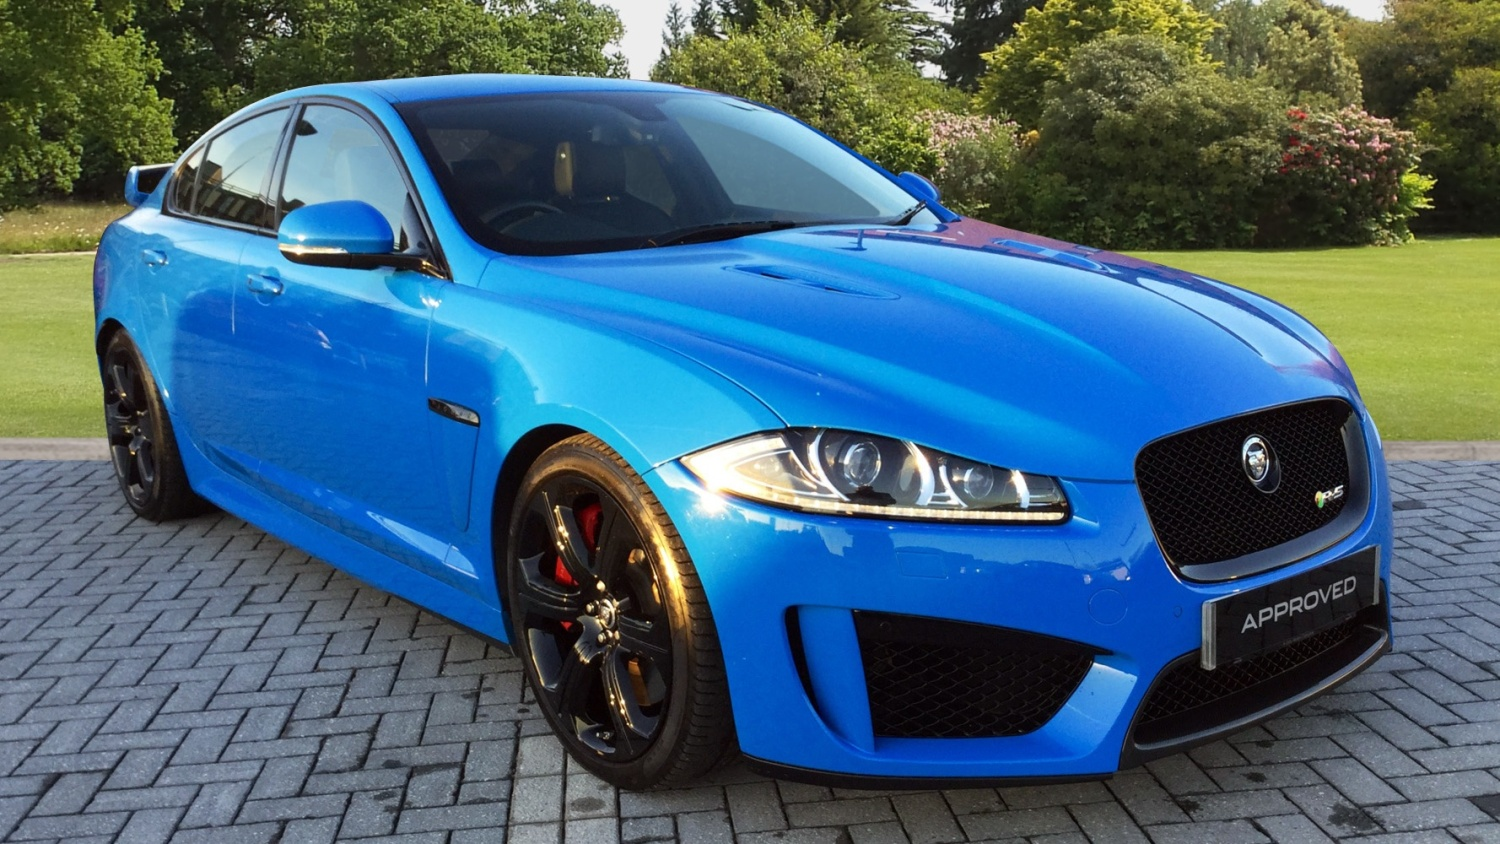 used jaguar xf 5 0 v8 supercharged xfr s 4dr auto petrol saloon for sale farnell land rover. Black Bedroom Furniture Sets. Home Design Ideas